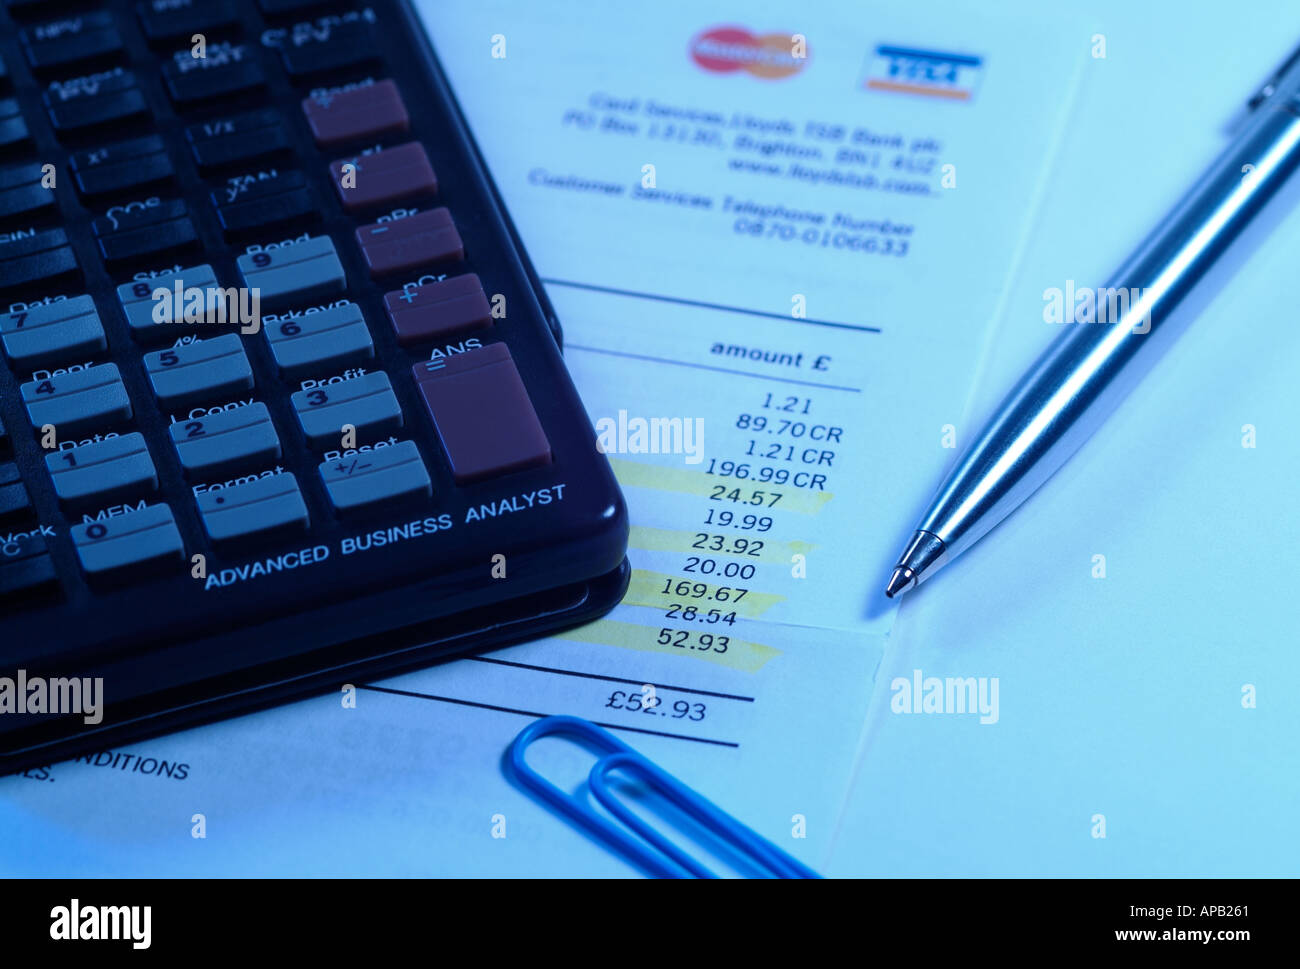 Personal Finance Image with a Creditcard Bill, Calculator and Pen. - Stock Image